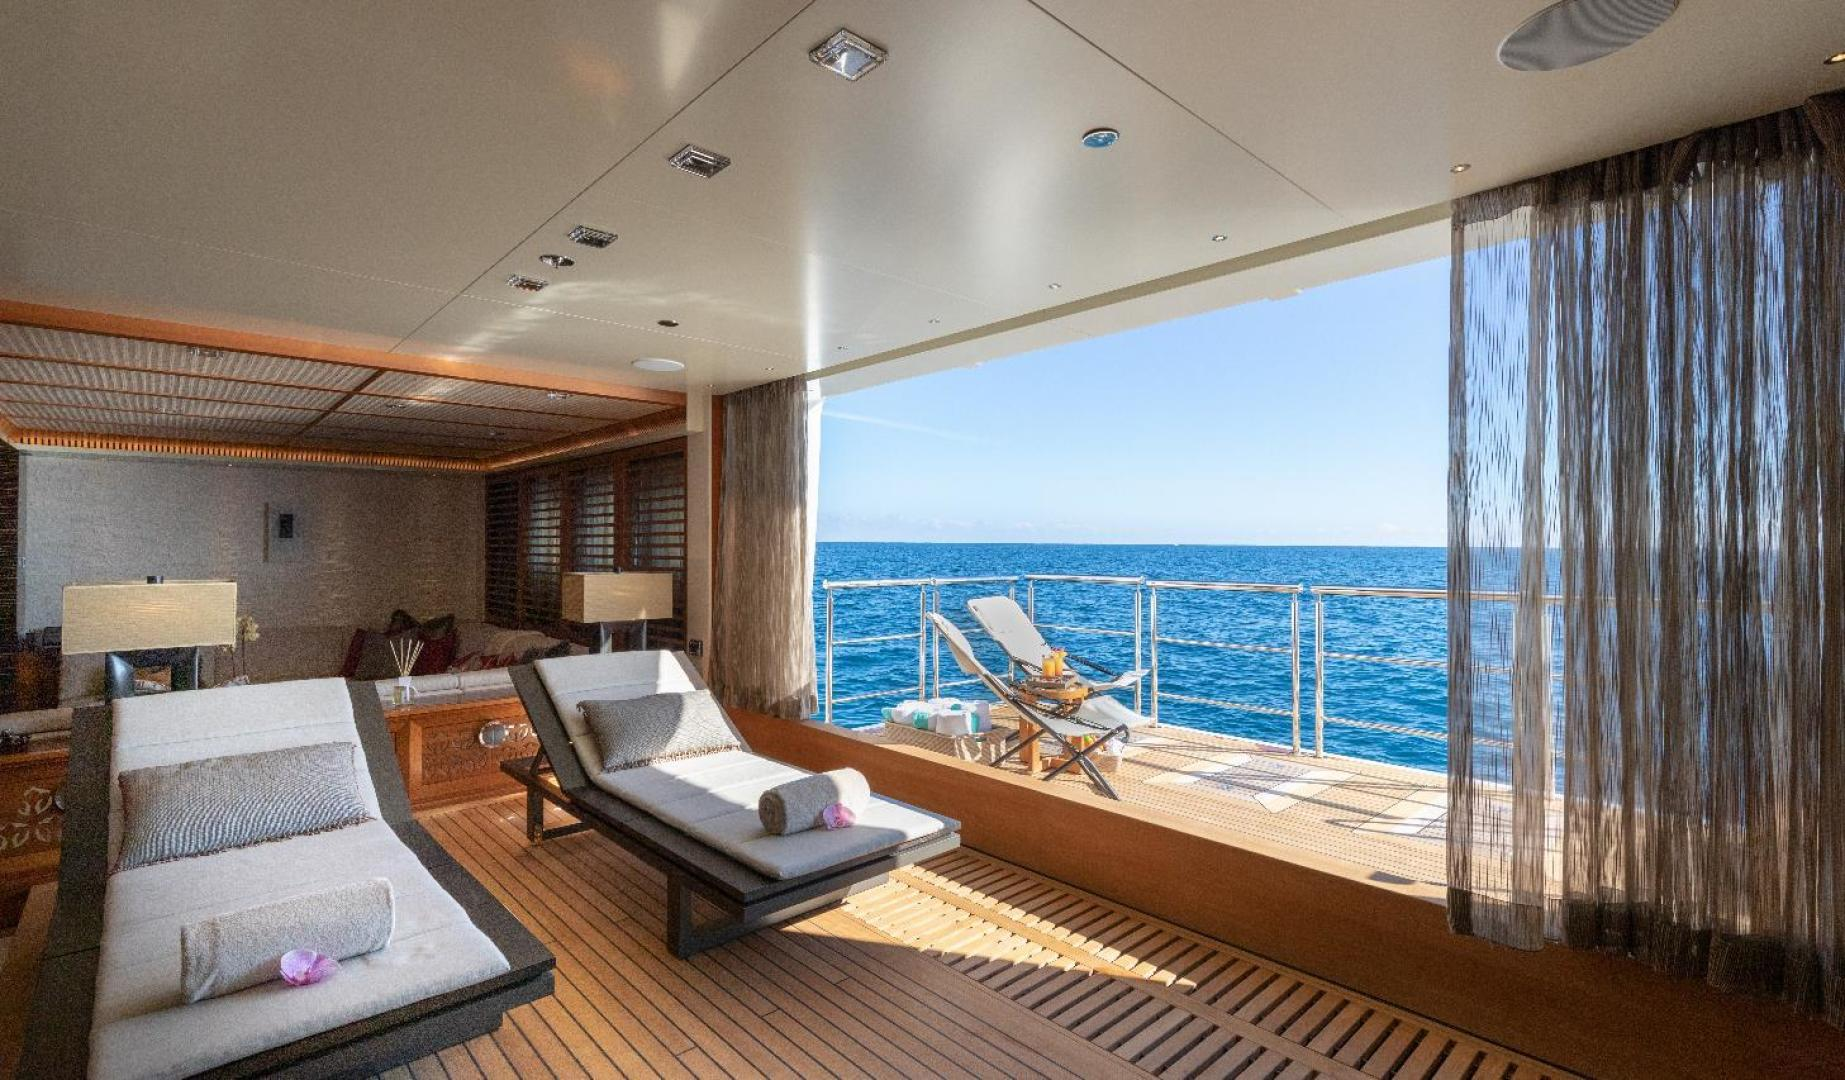 Turquoise 2012-QUANTUM OF SOLACE West Palm Beach-Florida-United States-Mid-ship, Lower Deck Spa with Hull-Side Balcony to Sea-1572083 | Thumbnail